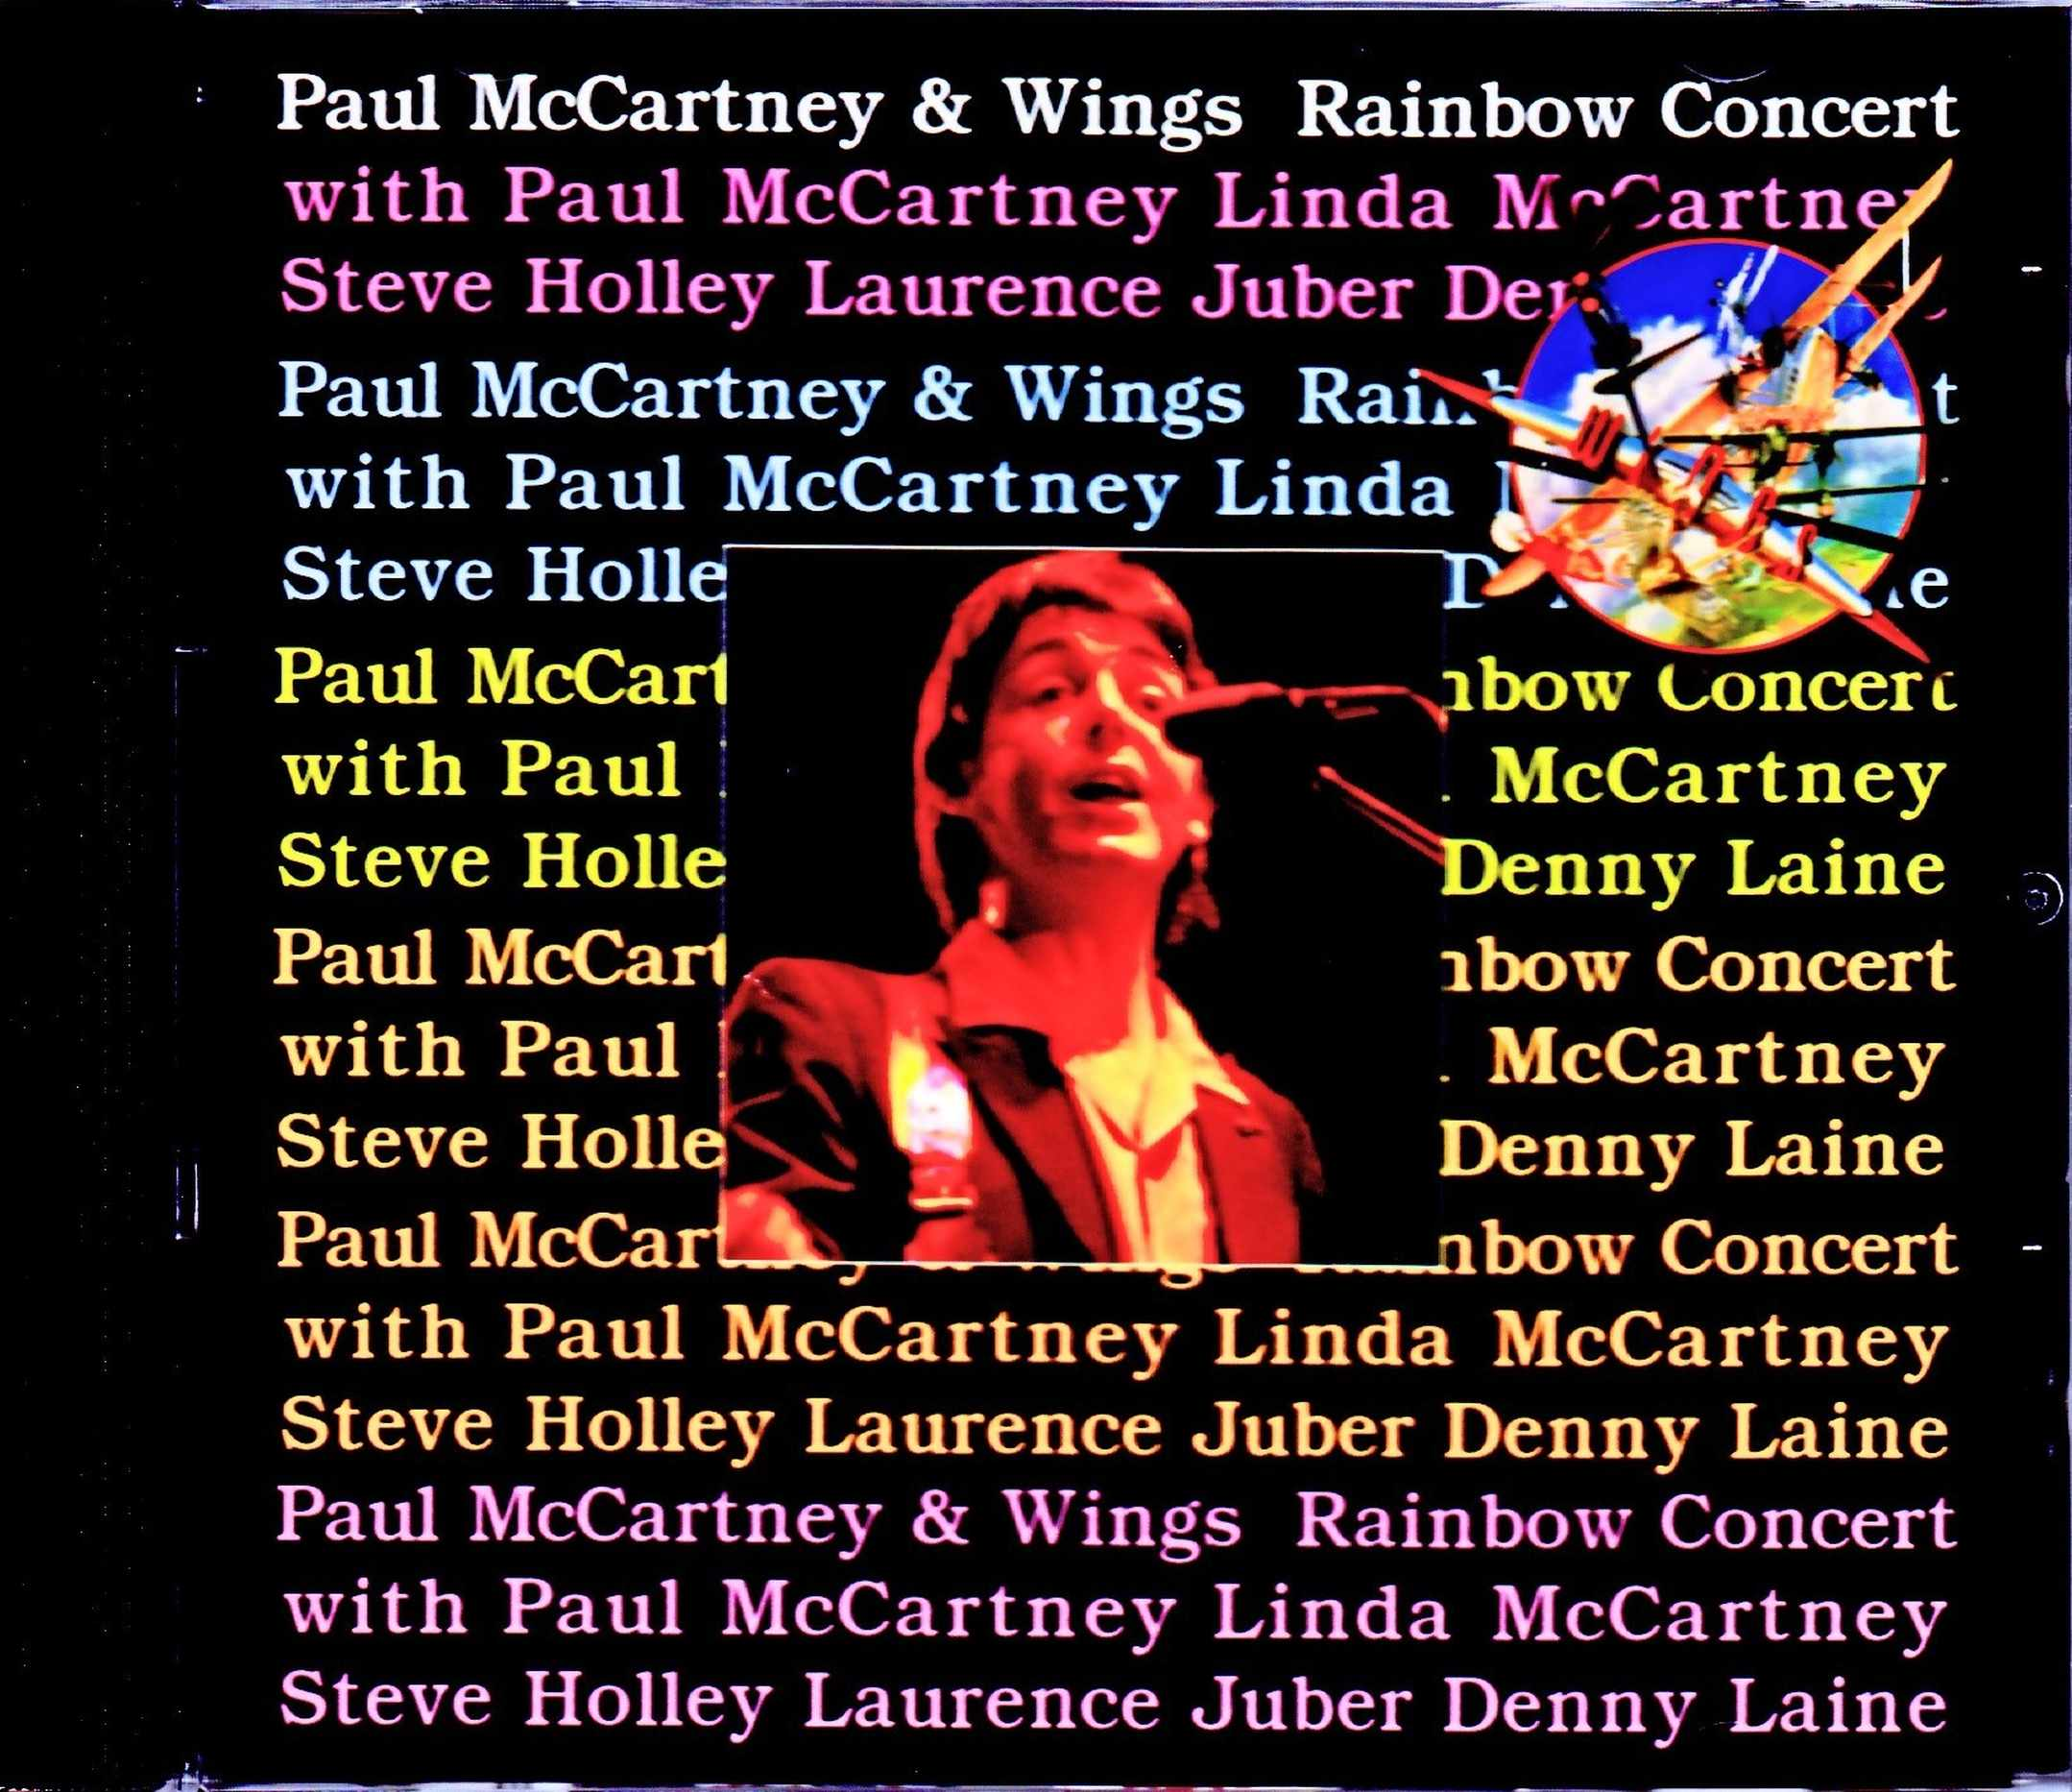 Paul McCartney ポール・マッカートニー/London,UK 12.5.1979